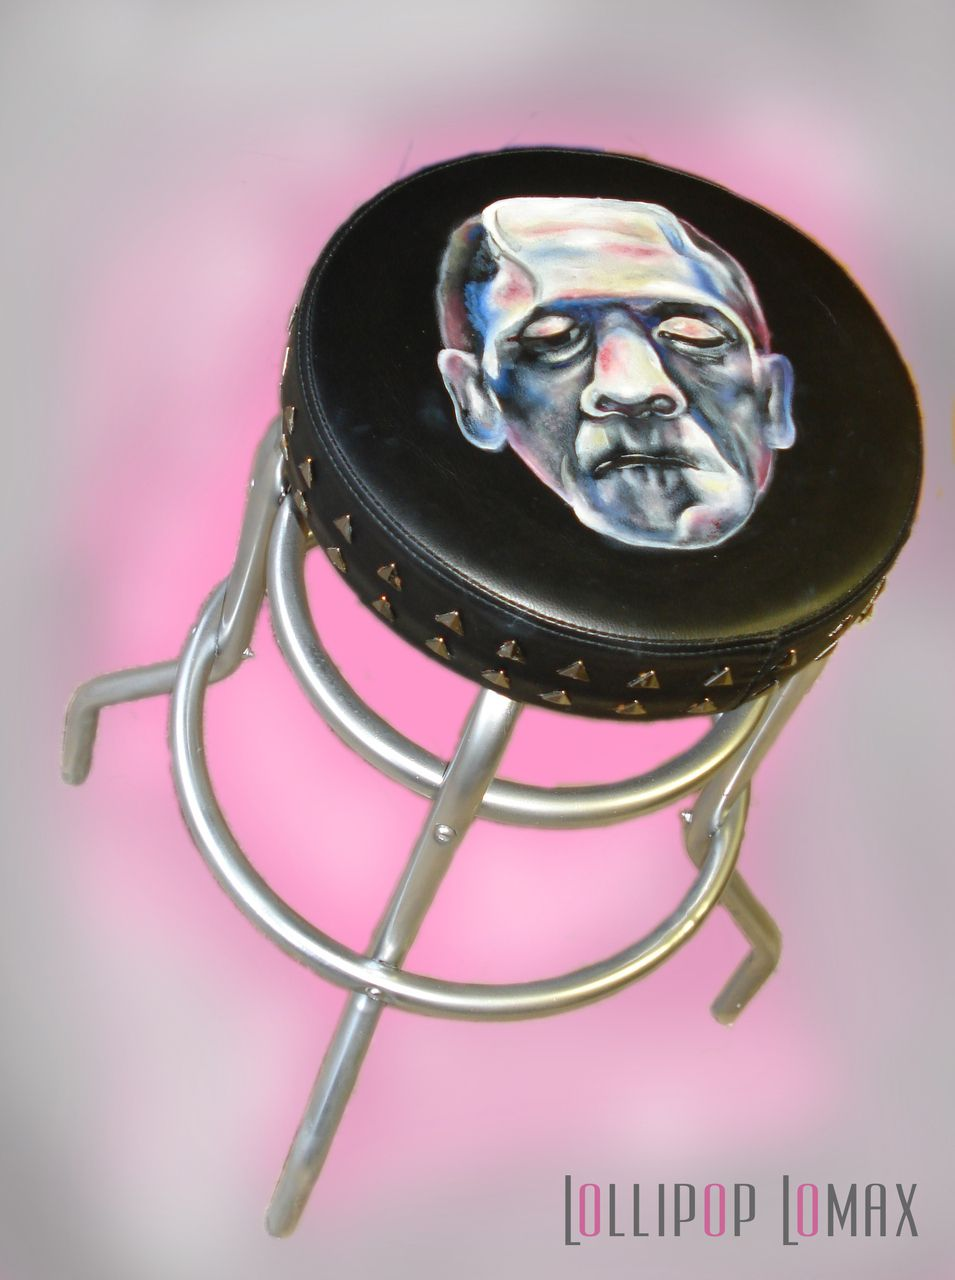 Creepy and cool stool featuring Frankenstein, perfect for horror film lovers! Lollipop Lomax - Frankenstein Bar Stool, £80.00 (http://www.lollipoplomax.com/frankenstein-bar-stool/)